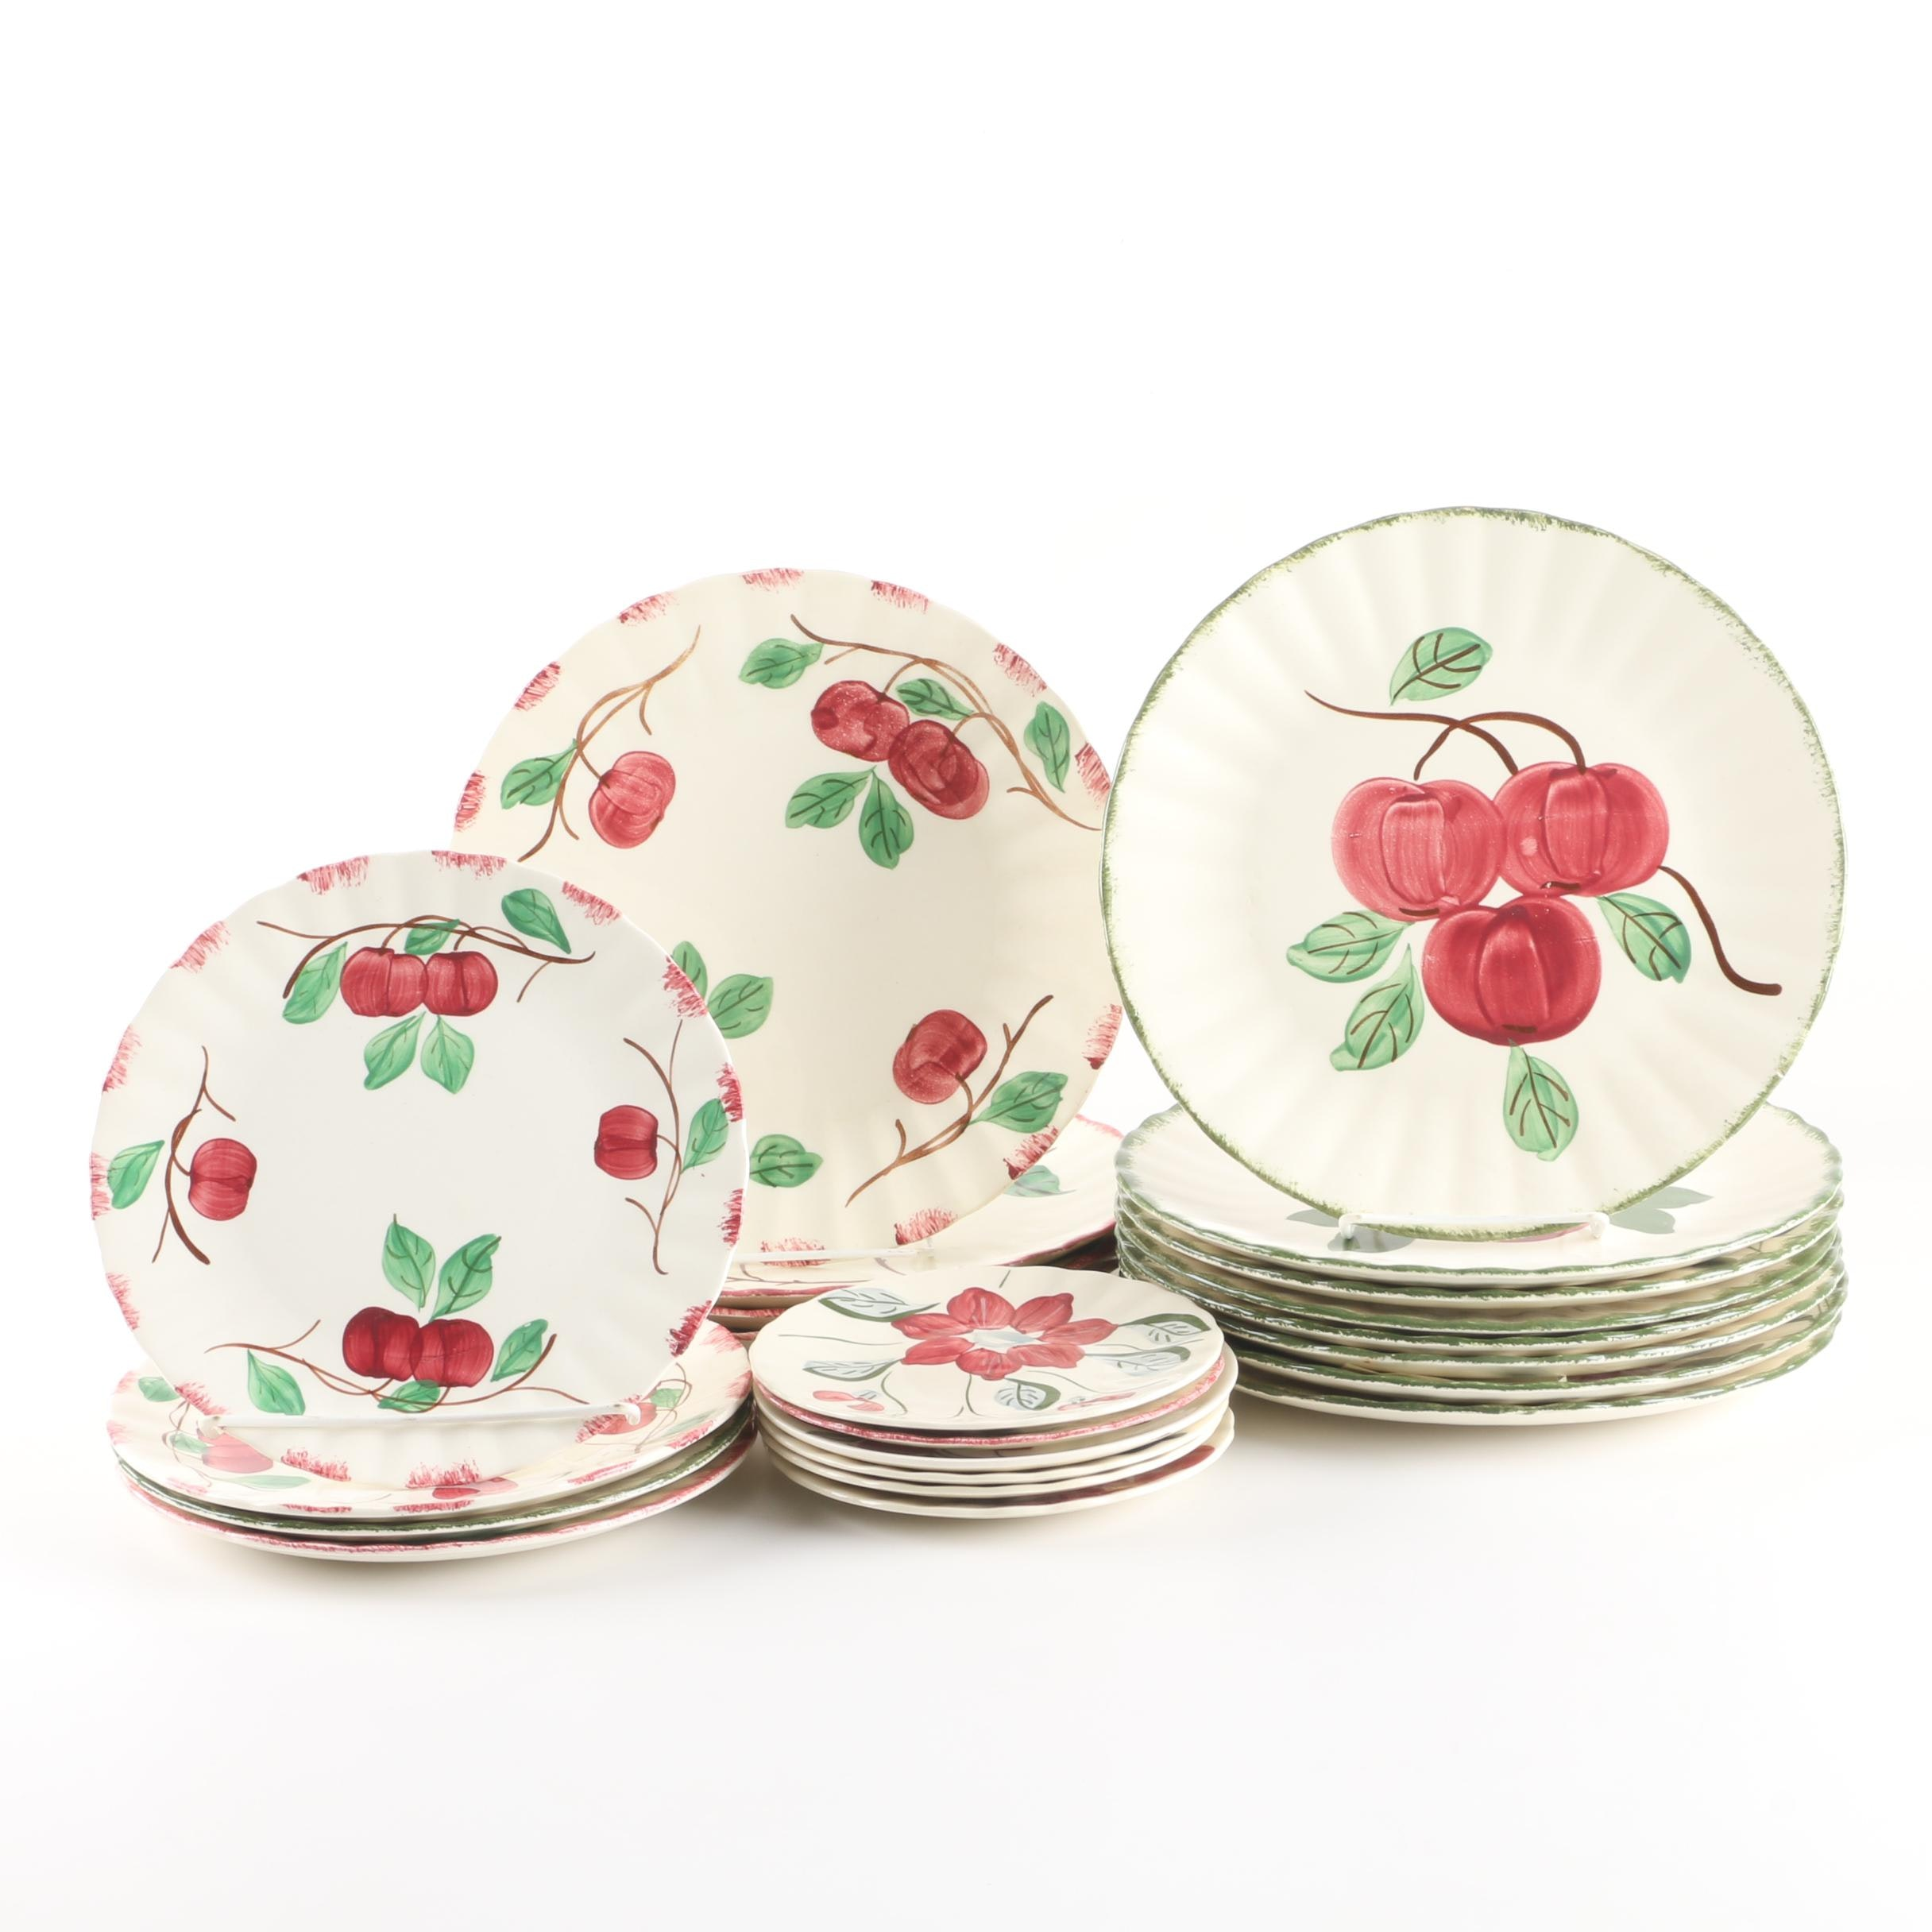 Blue Ridge Pottery Floral and Fruit Motif Dinnerware